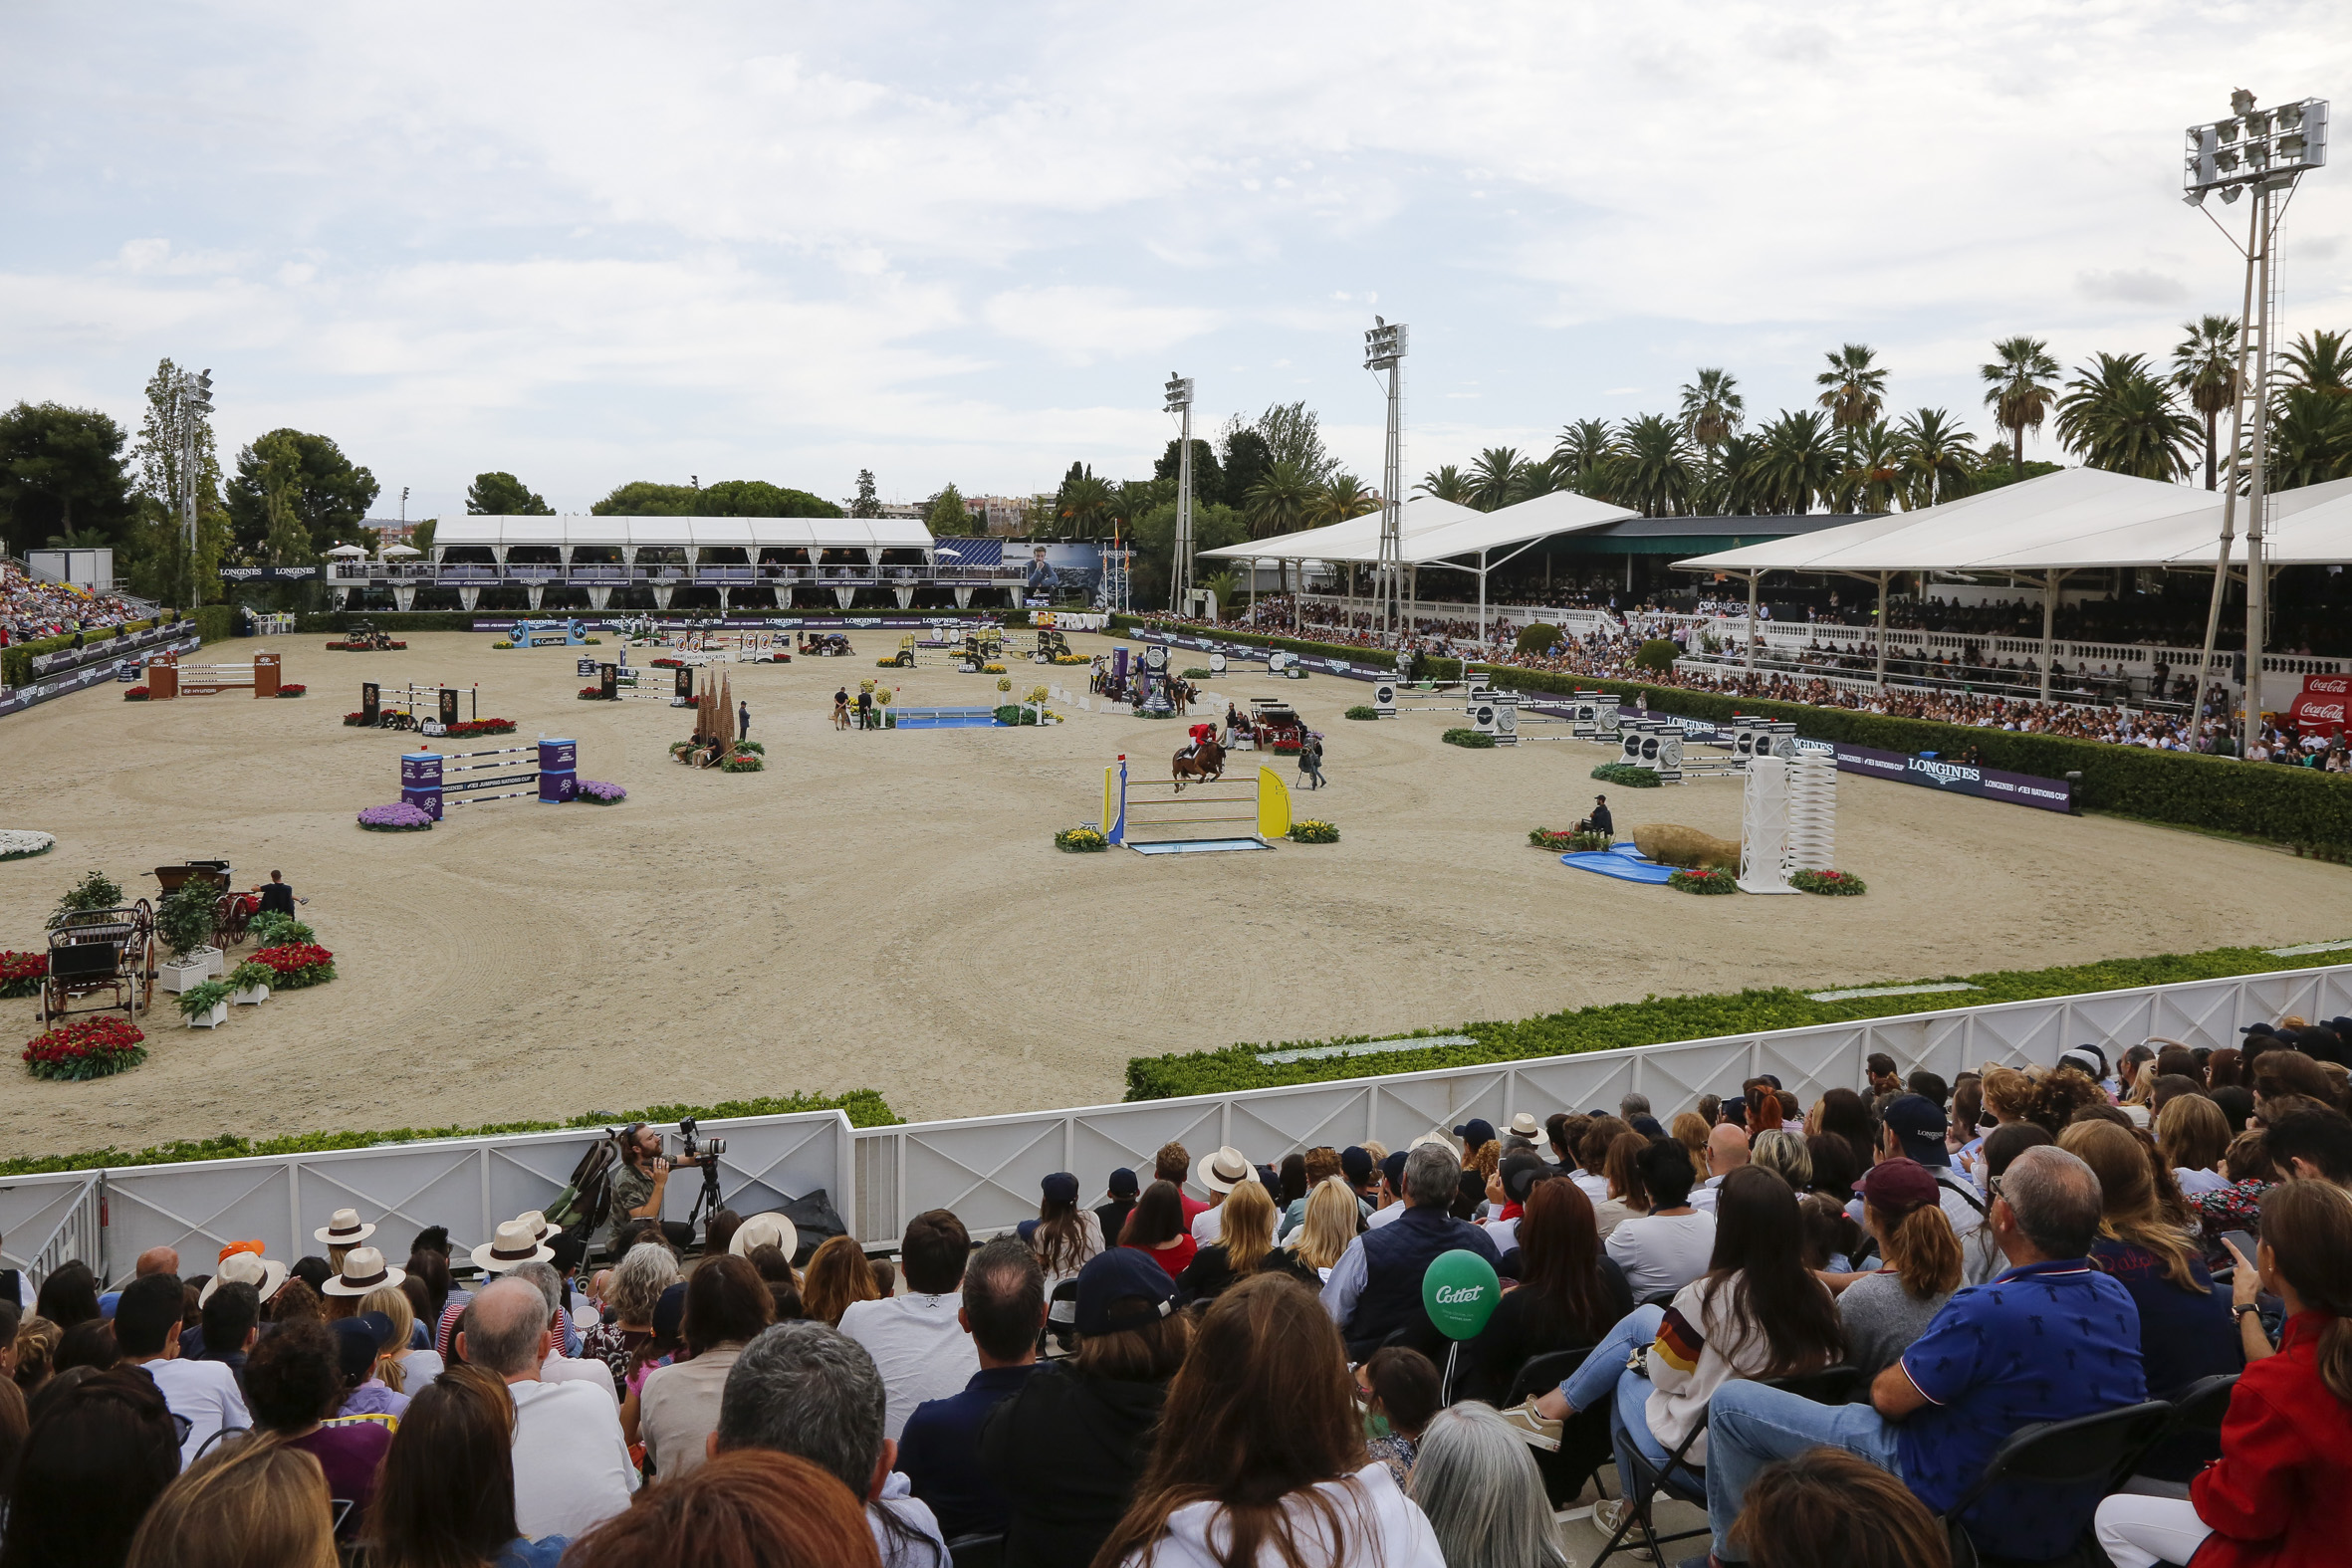 Resounding success in a 108th edition of the historic CSIO Barcelona